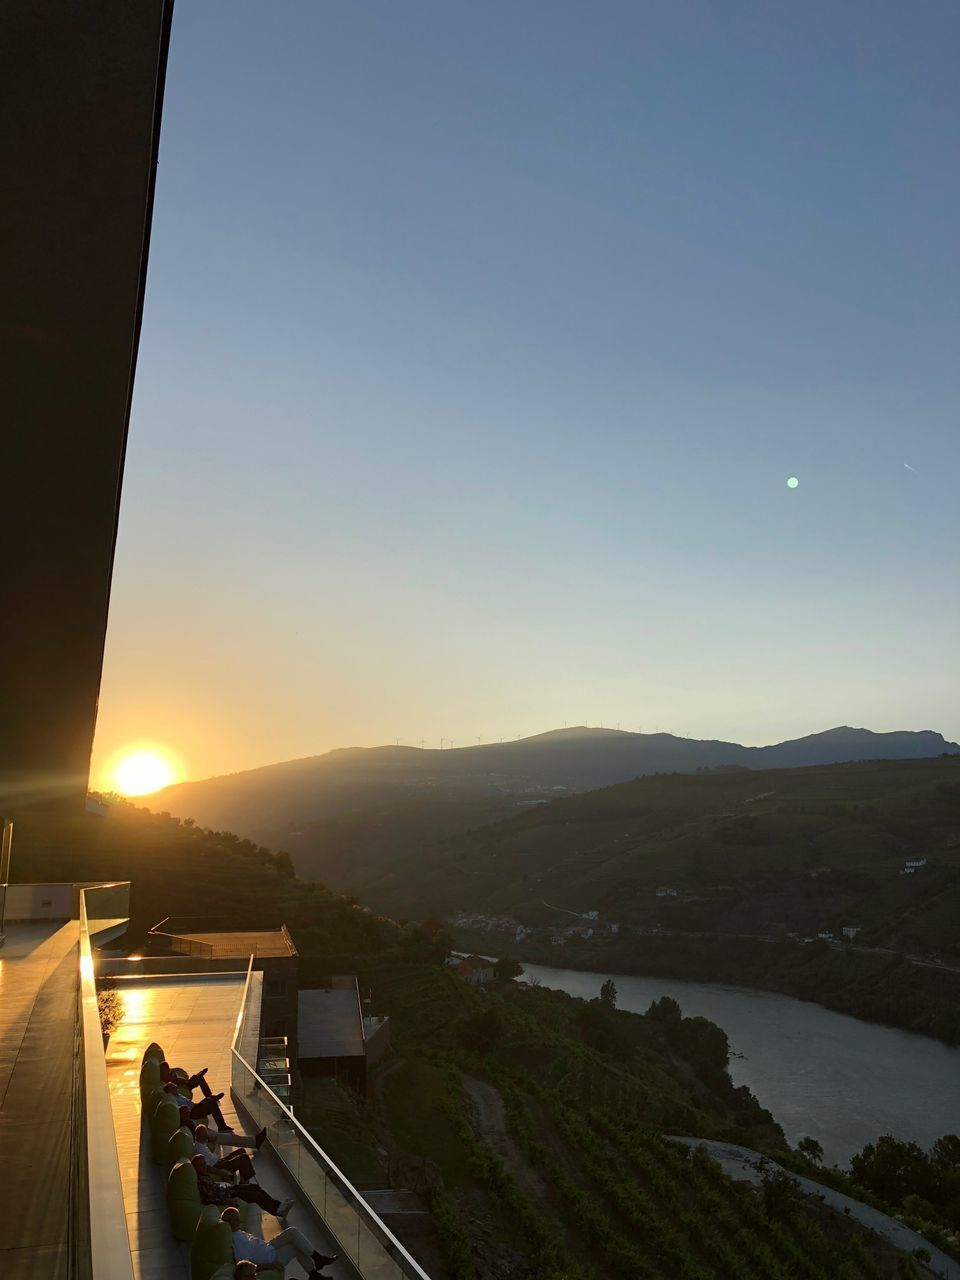 sky, mountain, architecture, scenics - nature, beauty in nature, built structure, sunset, water, building exterior, nature, mountain range, copy space, tranquility, sun, sunlight, building, no people, clear sky, high angle view, outdoors, lens flare